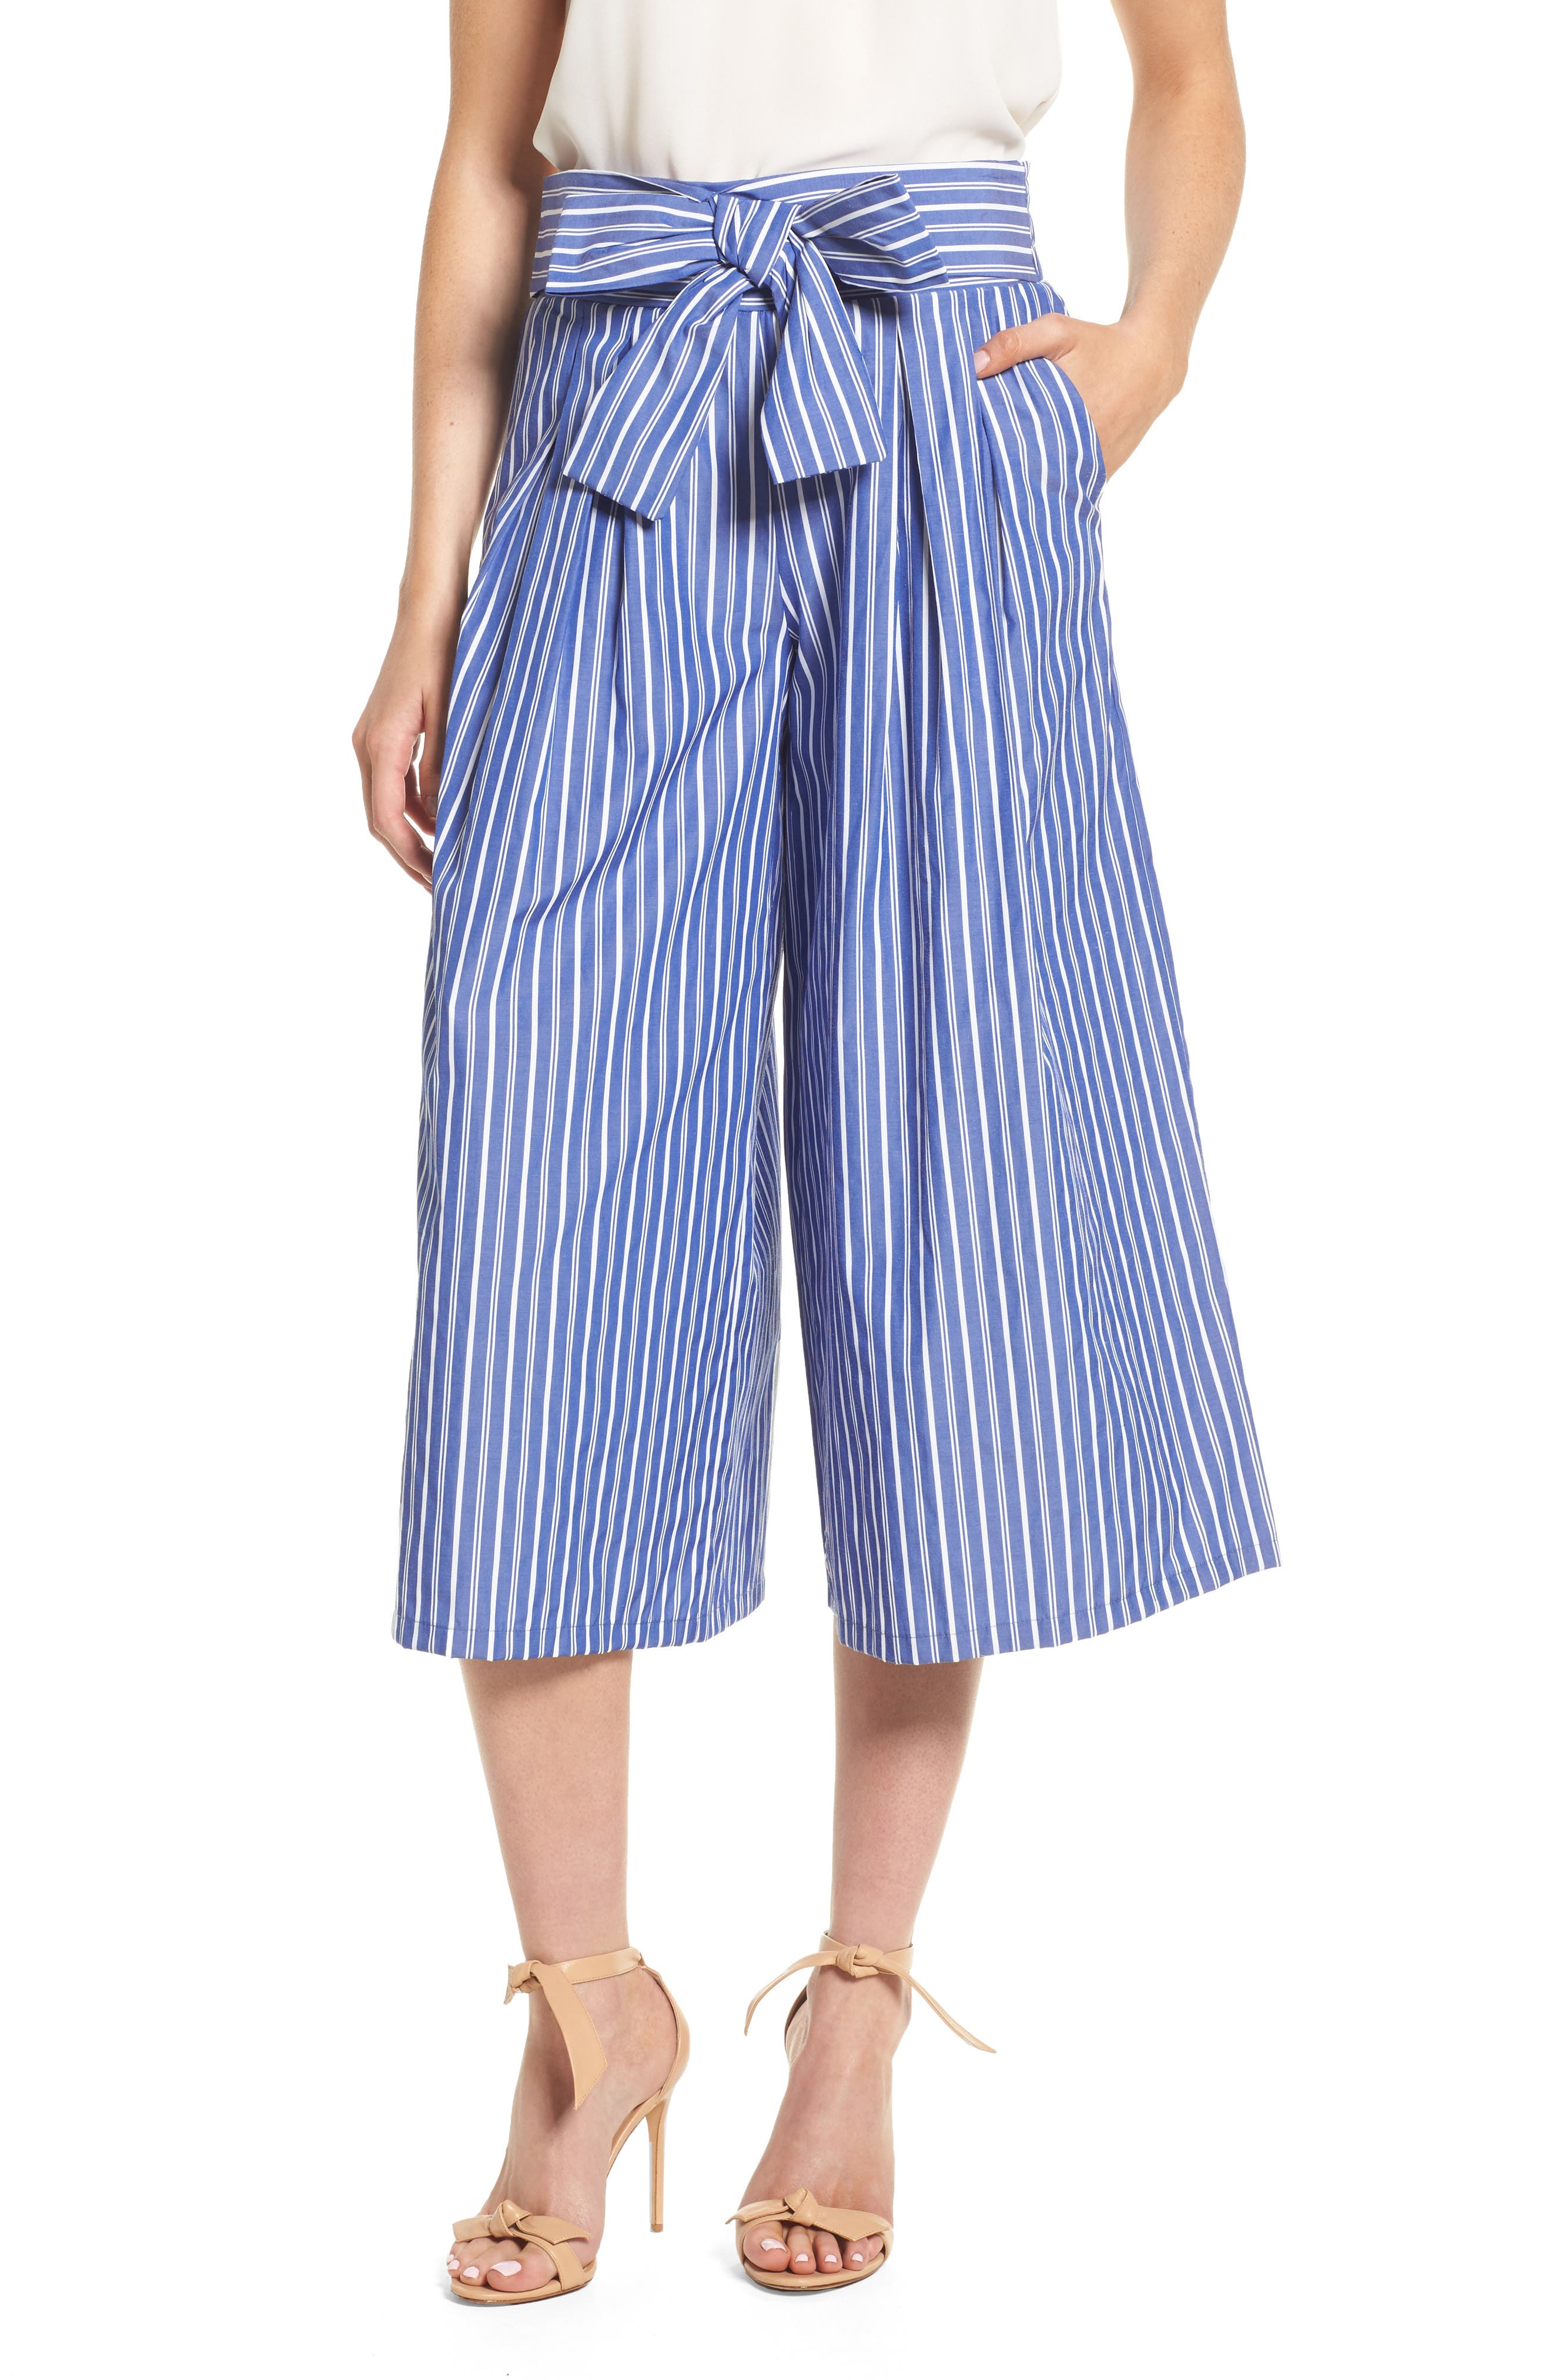 Zadeh Pants,                         Main,                         color, Blue/ White